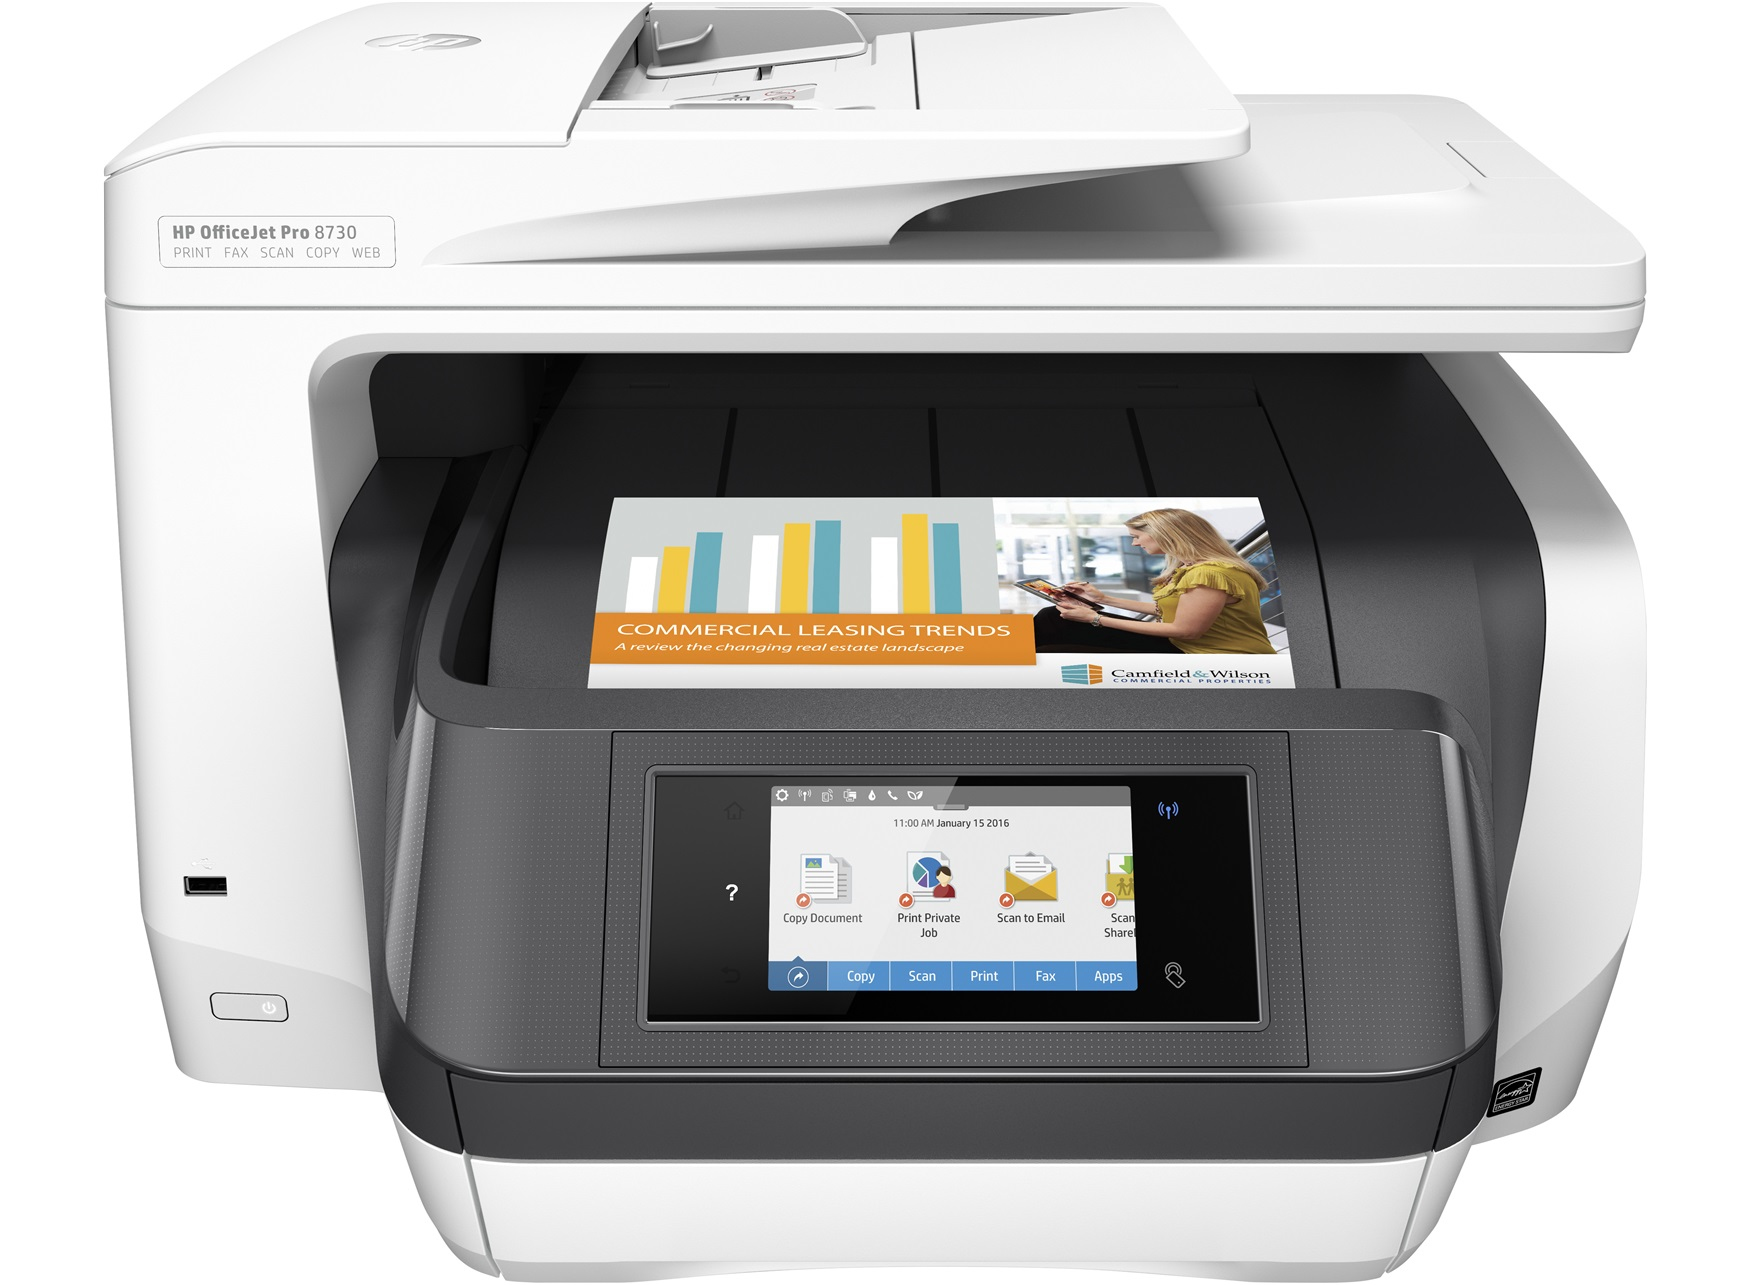 OfficeJet Pro 8730 - Color All-in-One Printer - Inkjet - A4 - USB / Ethernet / Wi-Fi